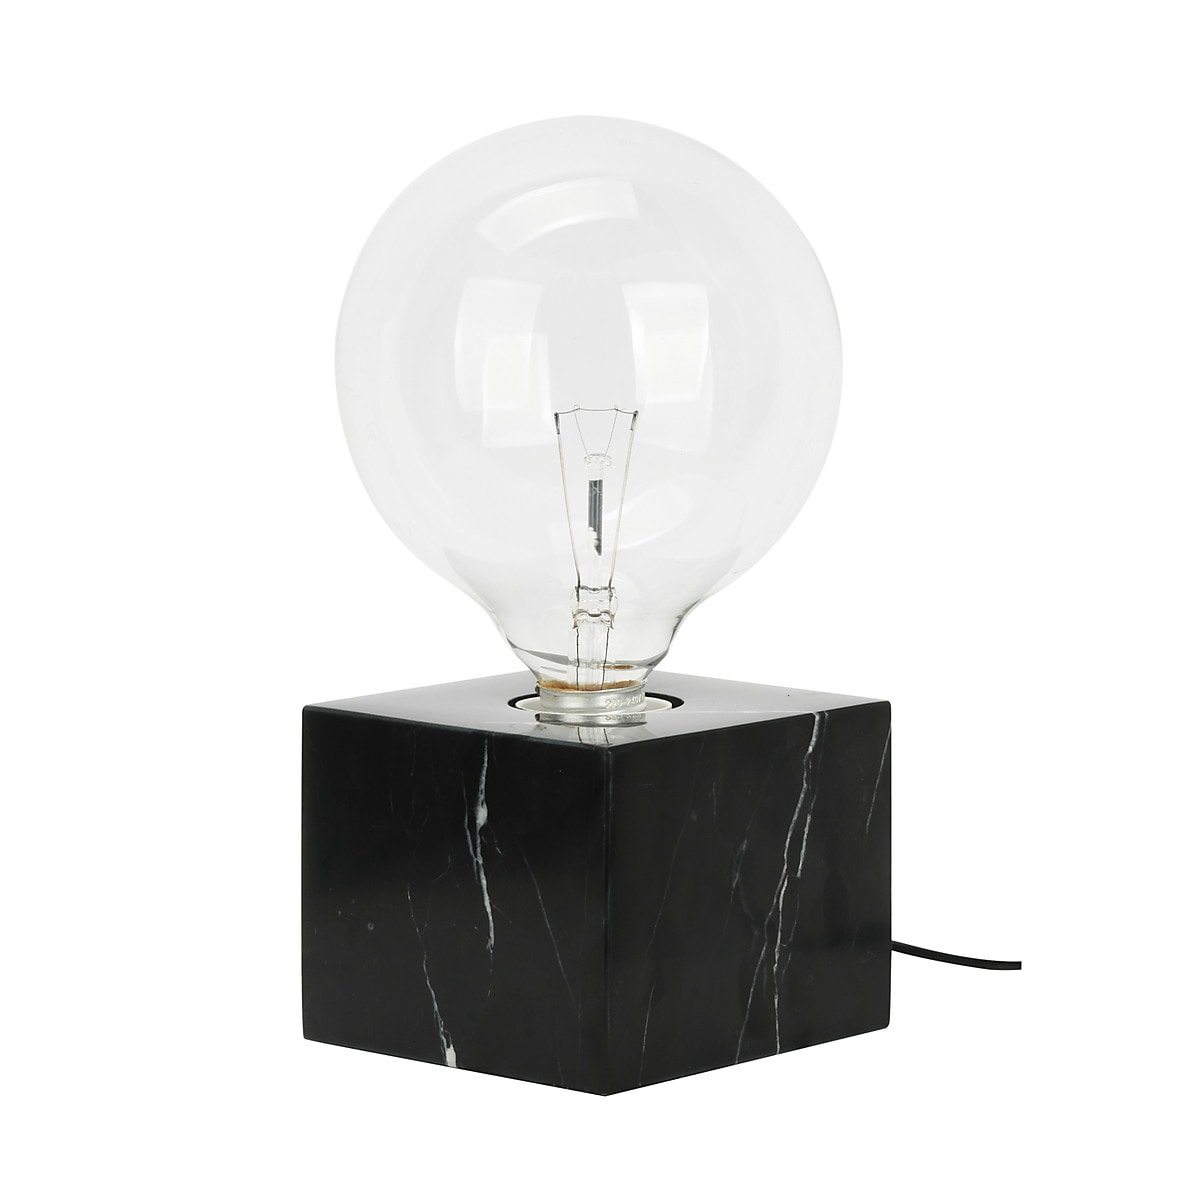 Northlight Cube bordlampe